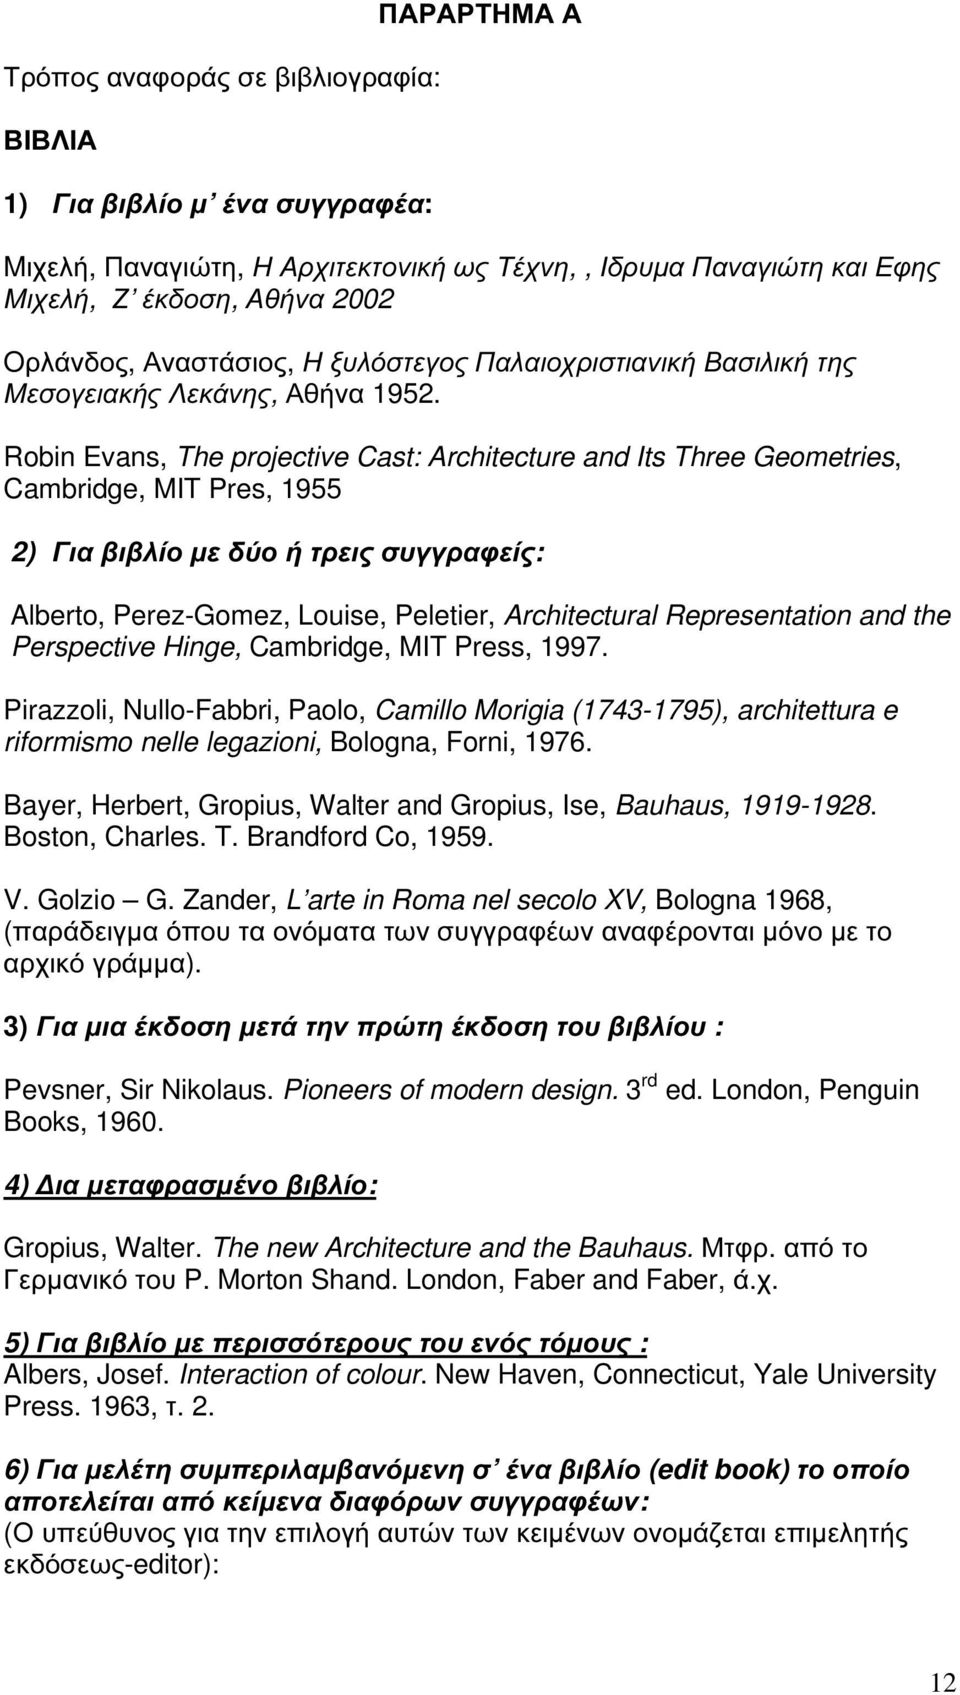 Robin Evans, The projective Cast: Architecture and Its Three Geometries, Cambridge, MIT Pres, 1955 2) Για βιβλίο µε δύο ή τρεις συγγραφείς: Alberto, Perez-Gomez, Louise, Peletier, Architectural